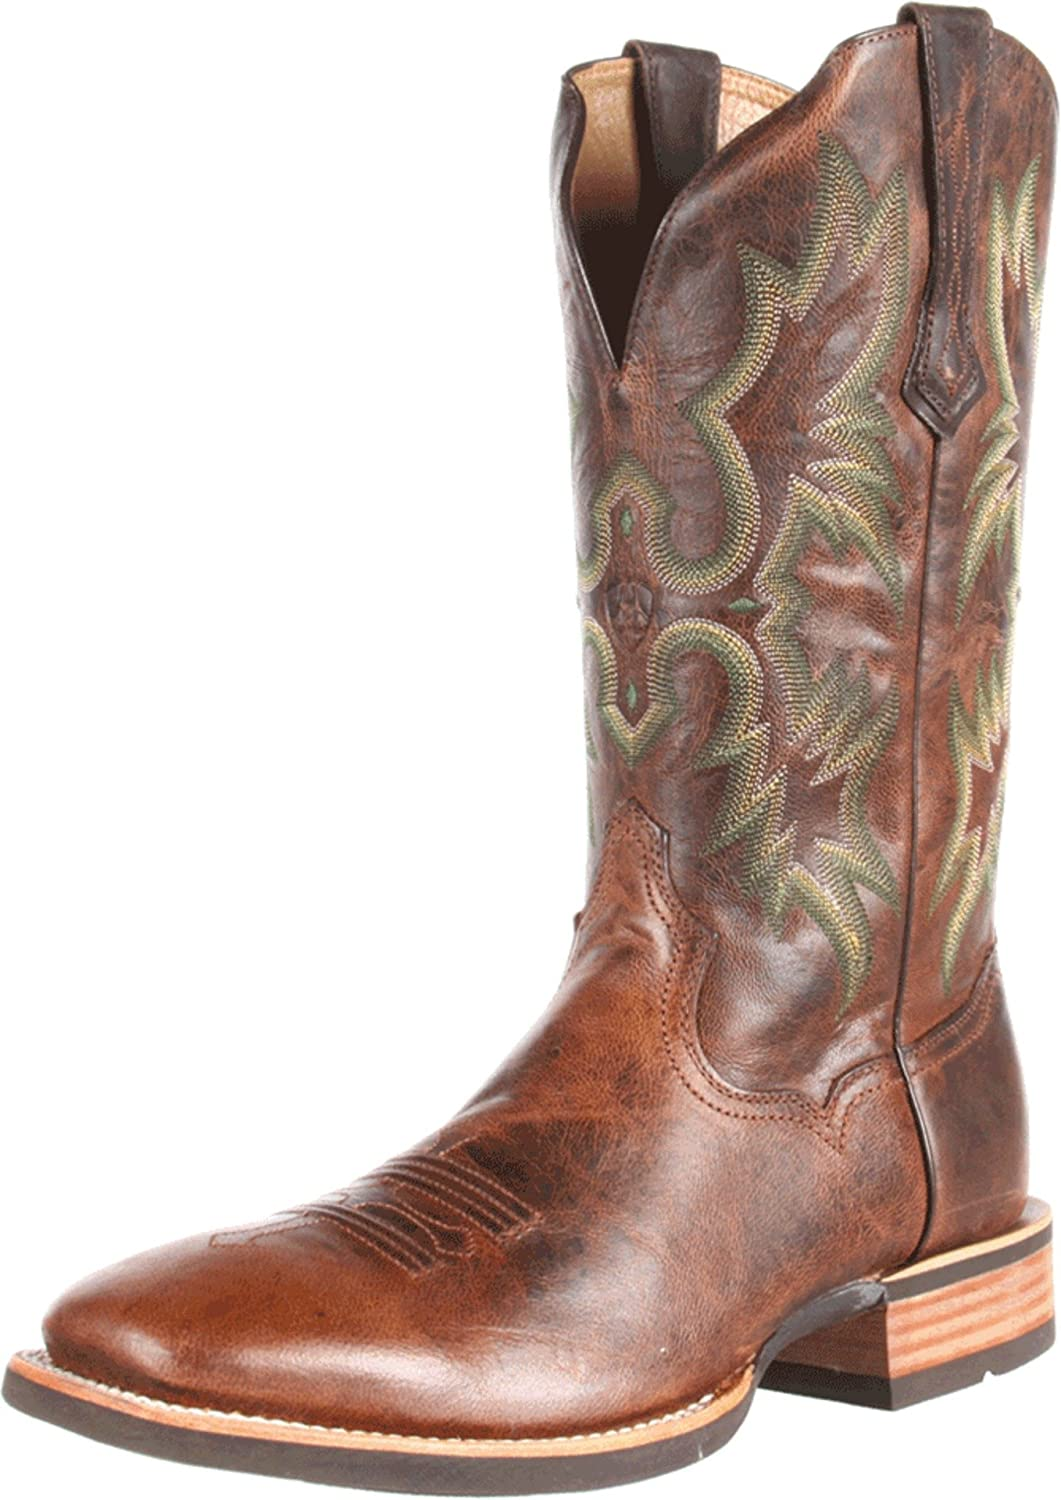 of over pairs handcrafted ranch hand in lucchese boots comforter most recommended styles cowboy womens comfortable tan